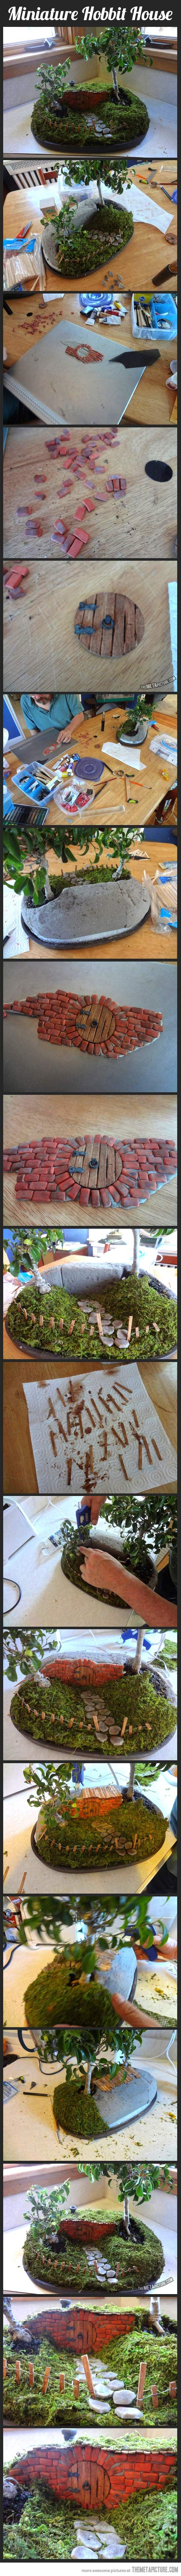 Hobbit house. This would be fun to make! #pin_it @mundodascascas See more Here: www.mundodascasas.com.br